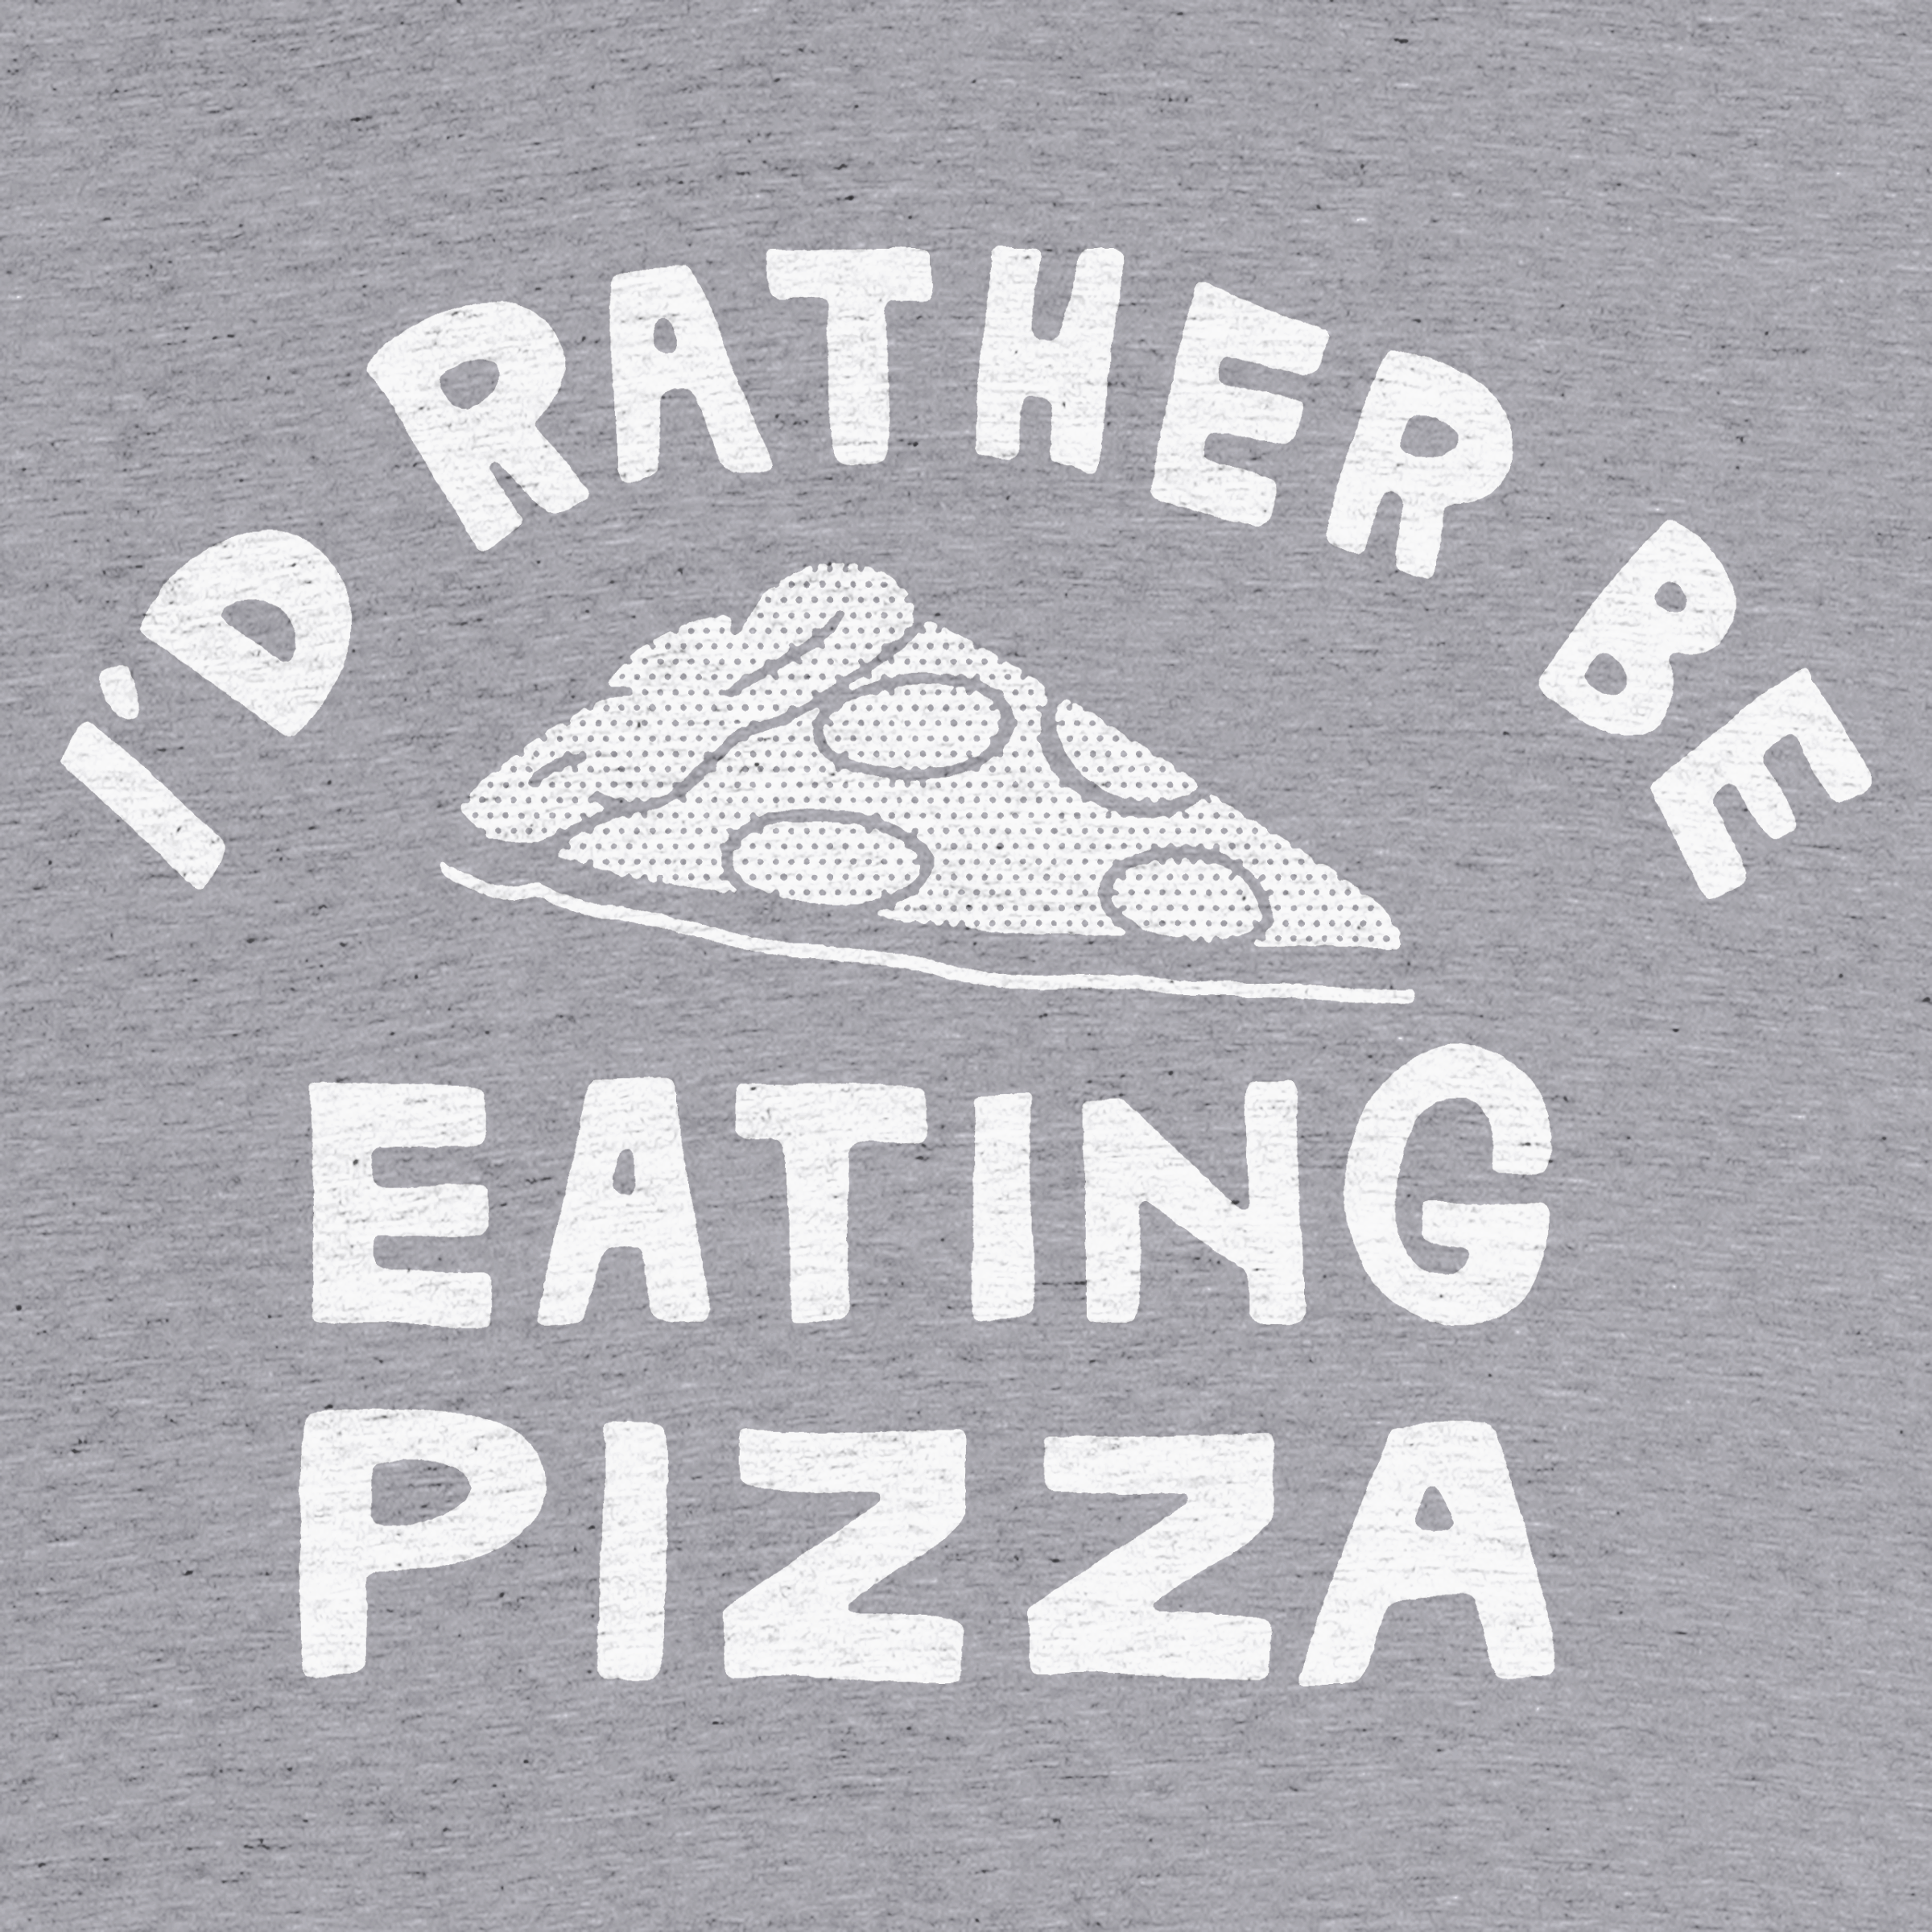 I'd Rather Be Eating Pizza Detail